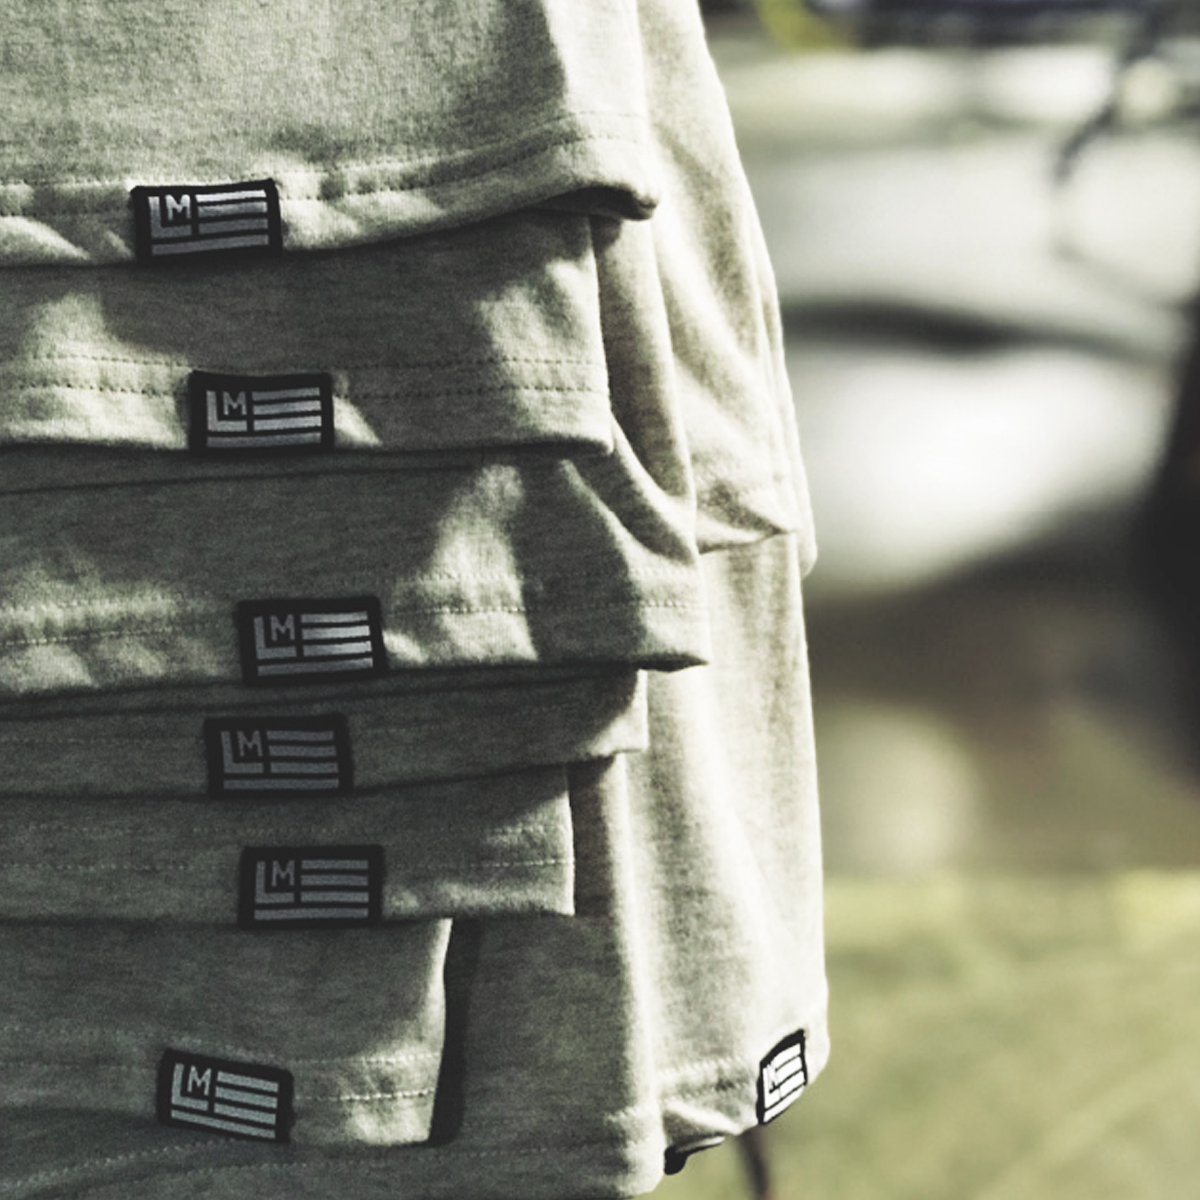 sewn in hem tags for shirts